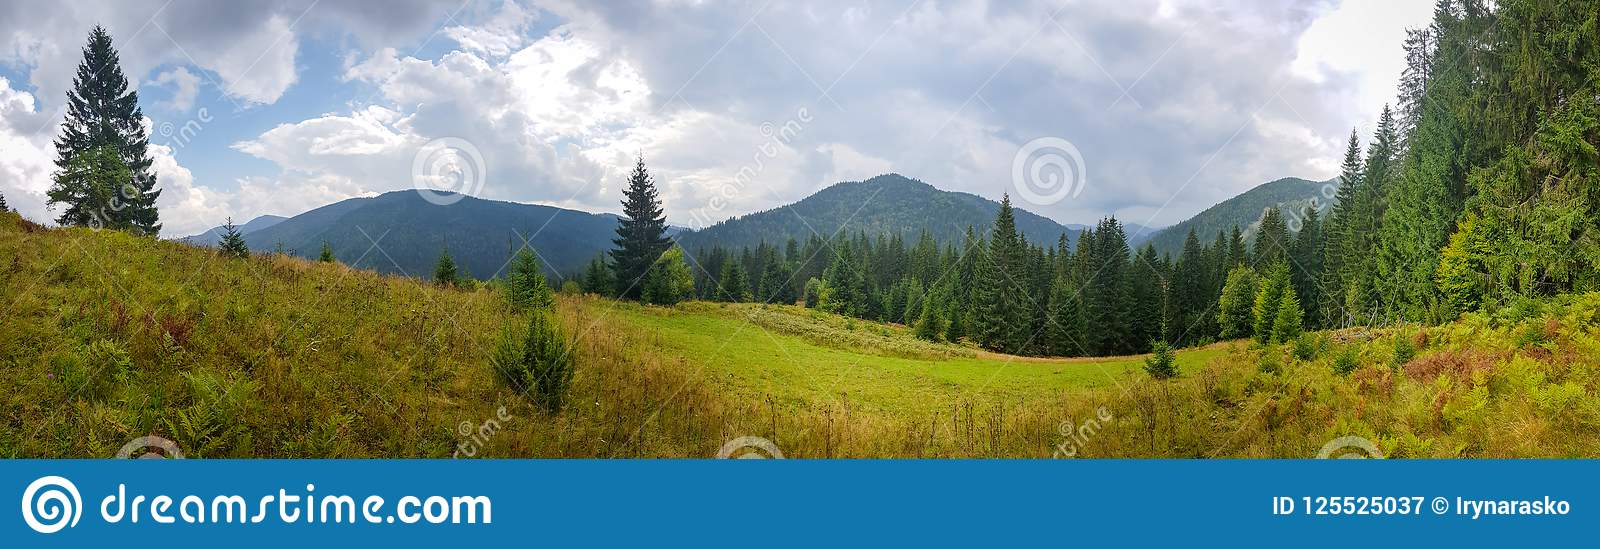 Download Beautiful Natural Landscape In Green Mountains And Fields Stock Image - Image of panorama, natural: 125525037